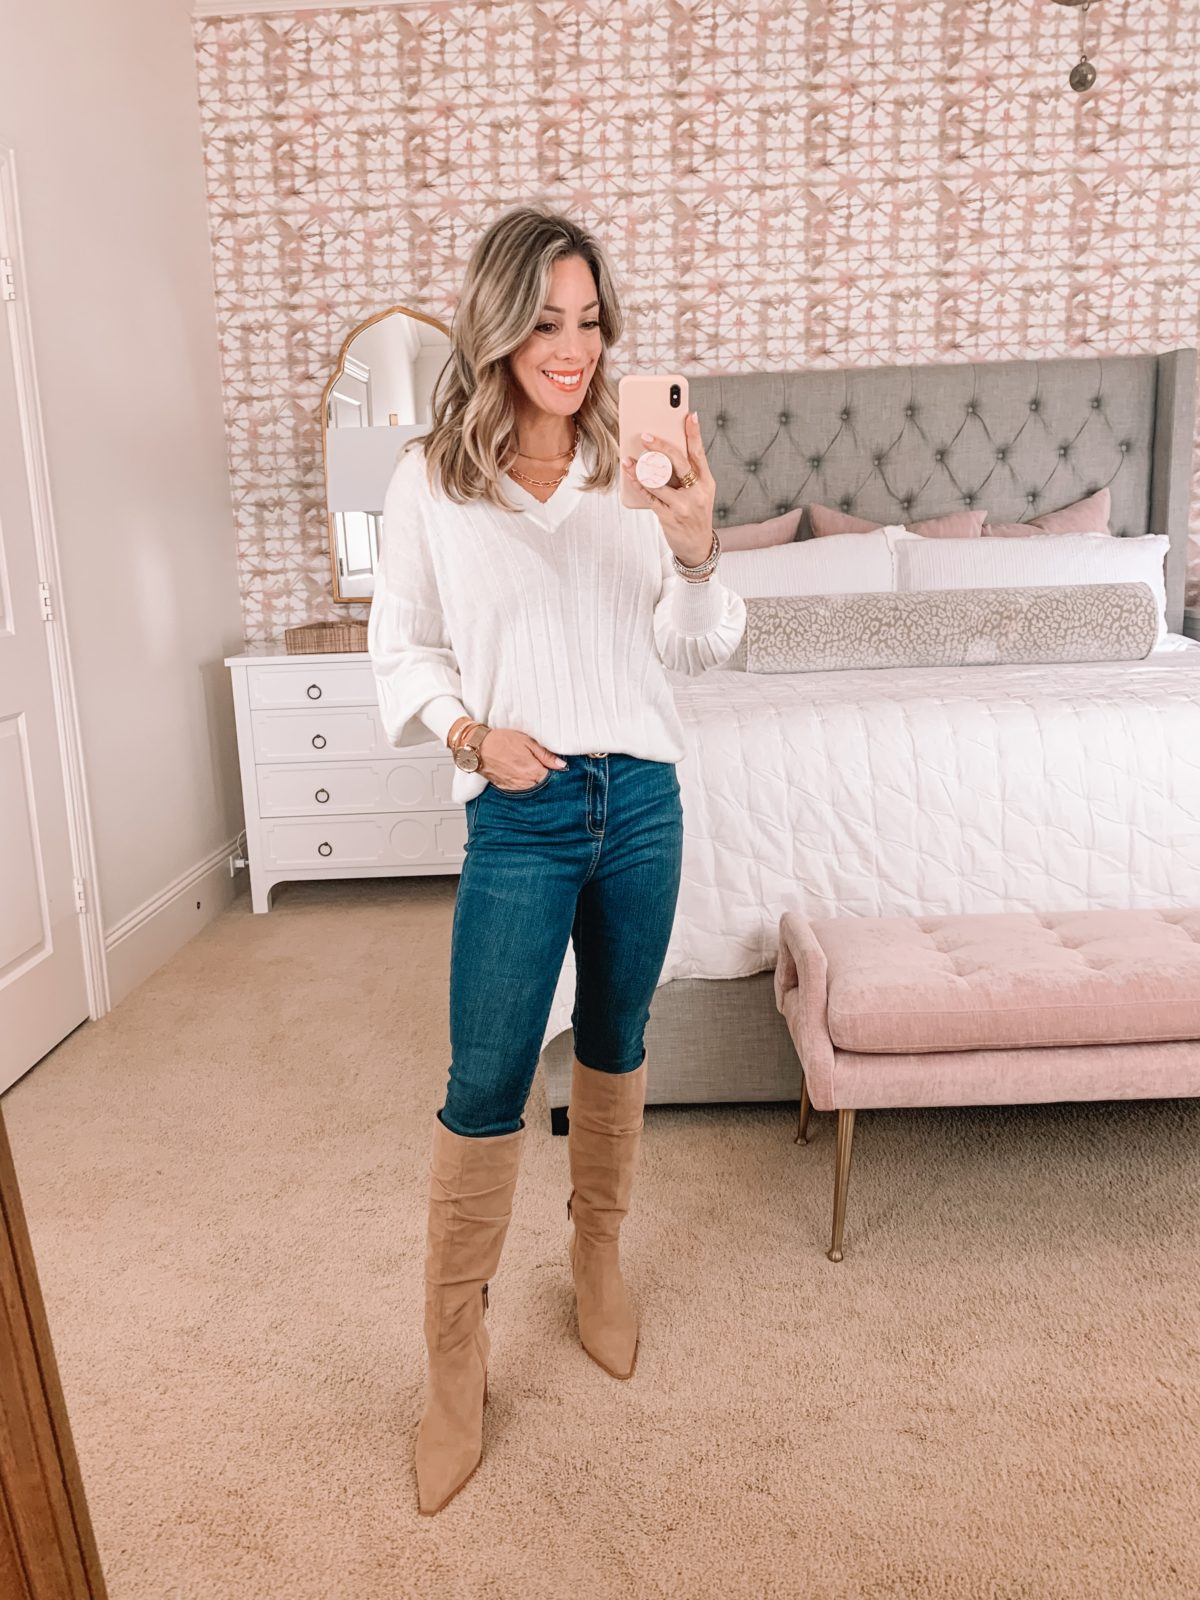 Amazon Fashion Faves, V-Neck Sweater, Jeans, Boots